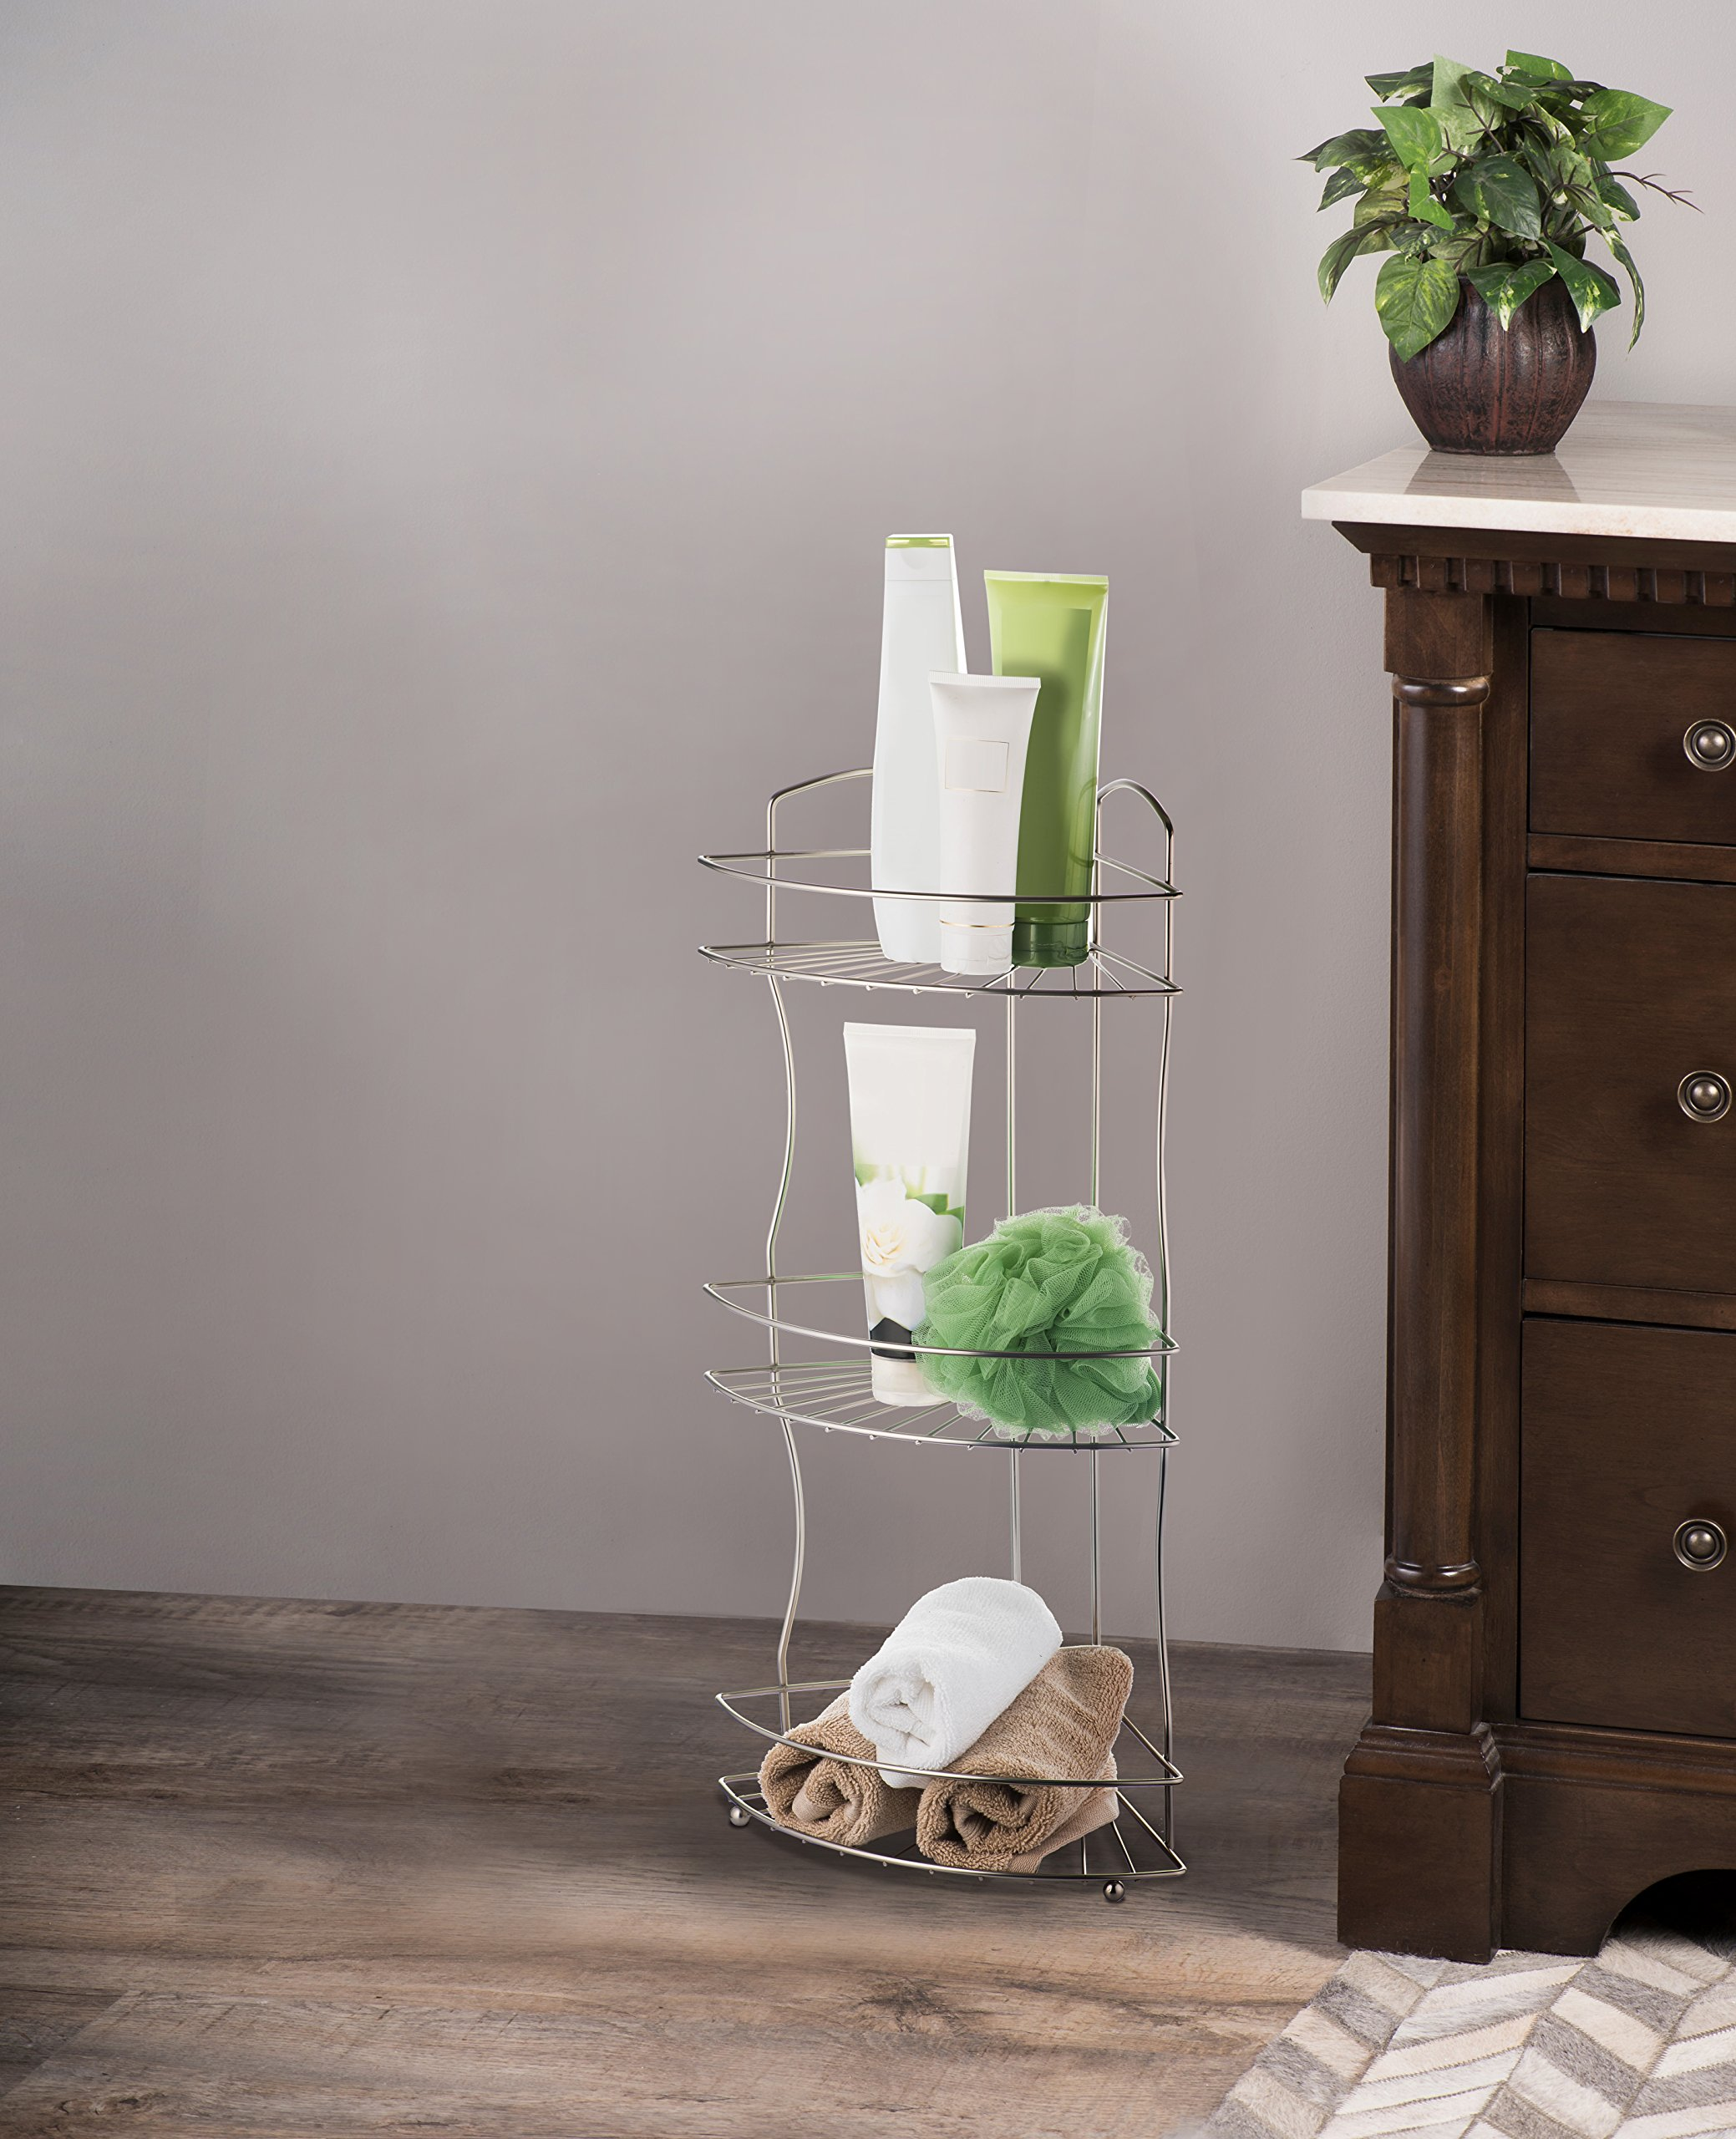 AMG and Enchante Accessories Free Standing Bathroom Spa Tower Floor Caddy, FC232-A SNI, Satin Nickel by AMG (Image #2)